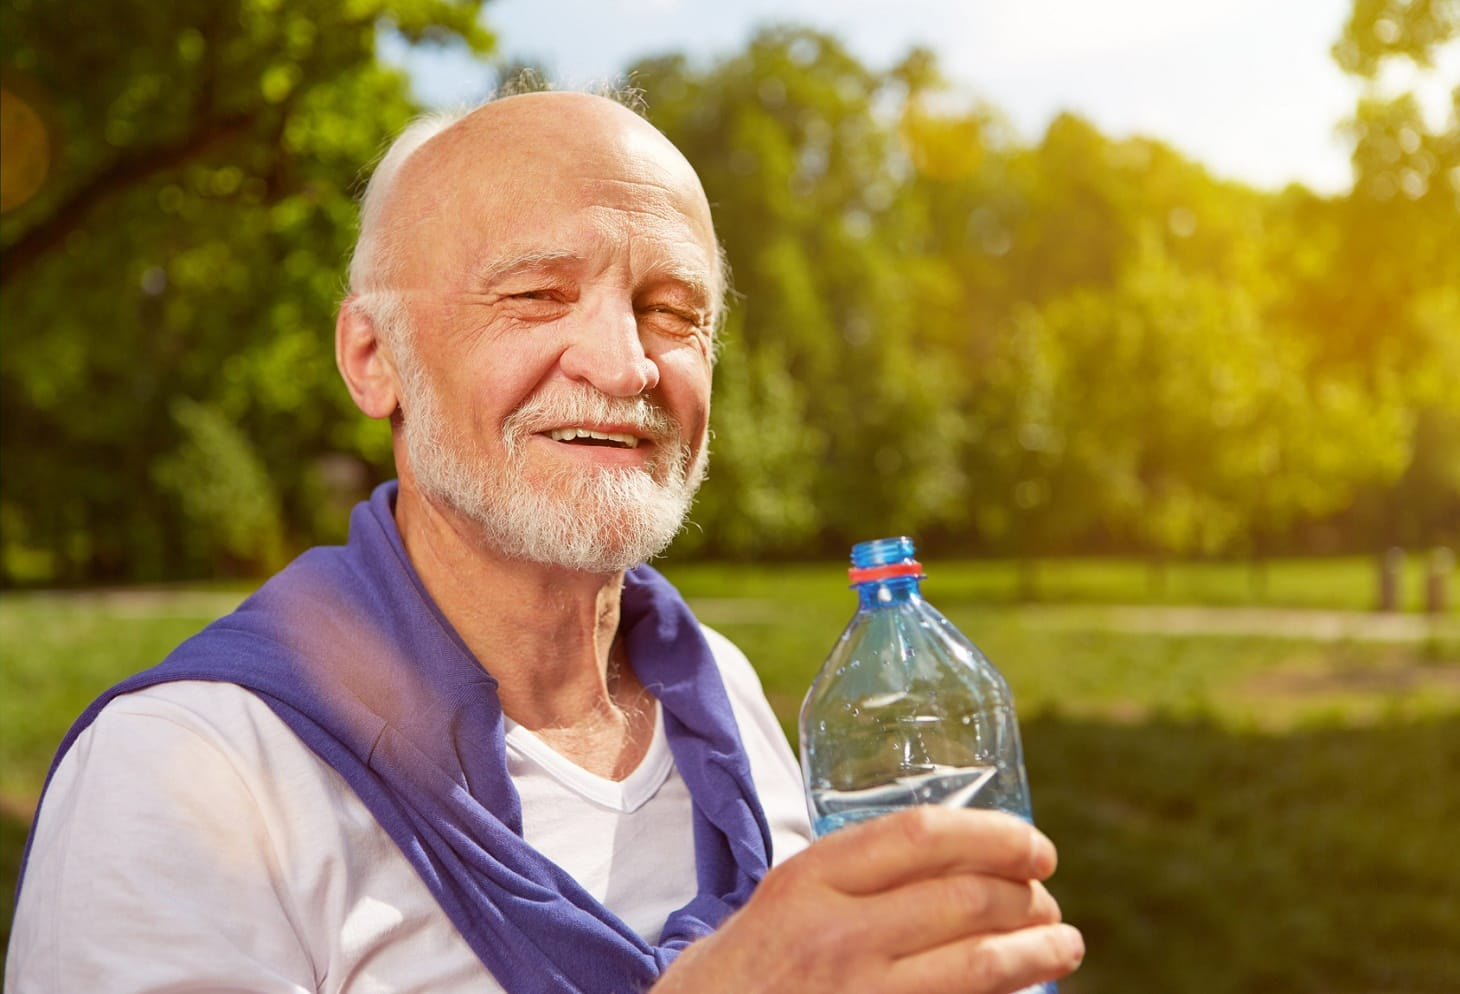 Proper Hydration Prevents Disease And Reduces The Need For